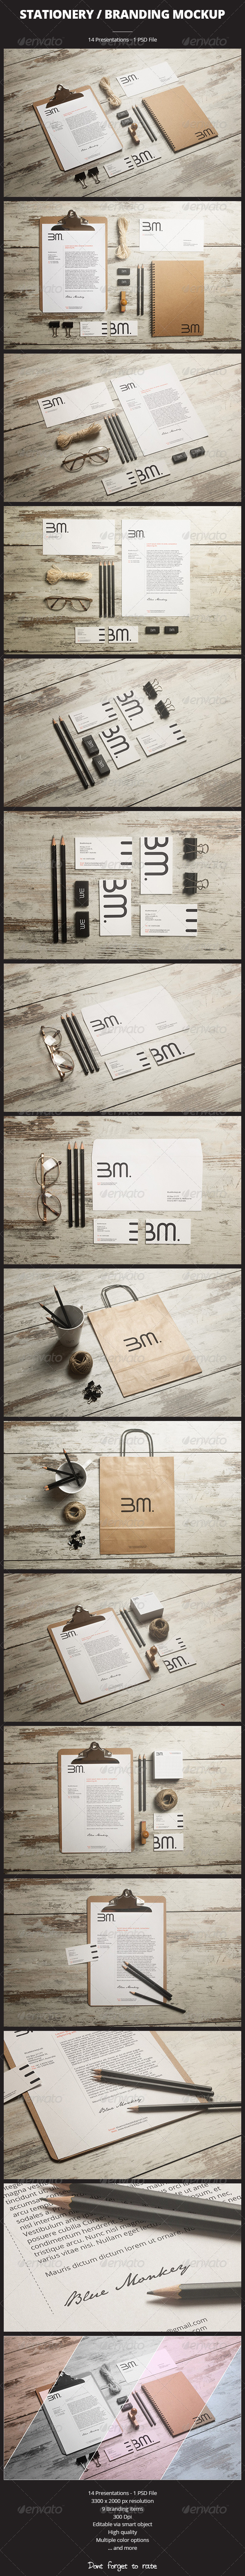 GraphicRiver Stationery Branding Mockup 6073133